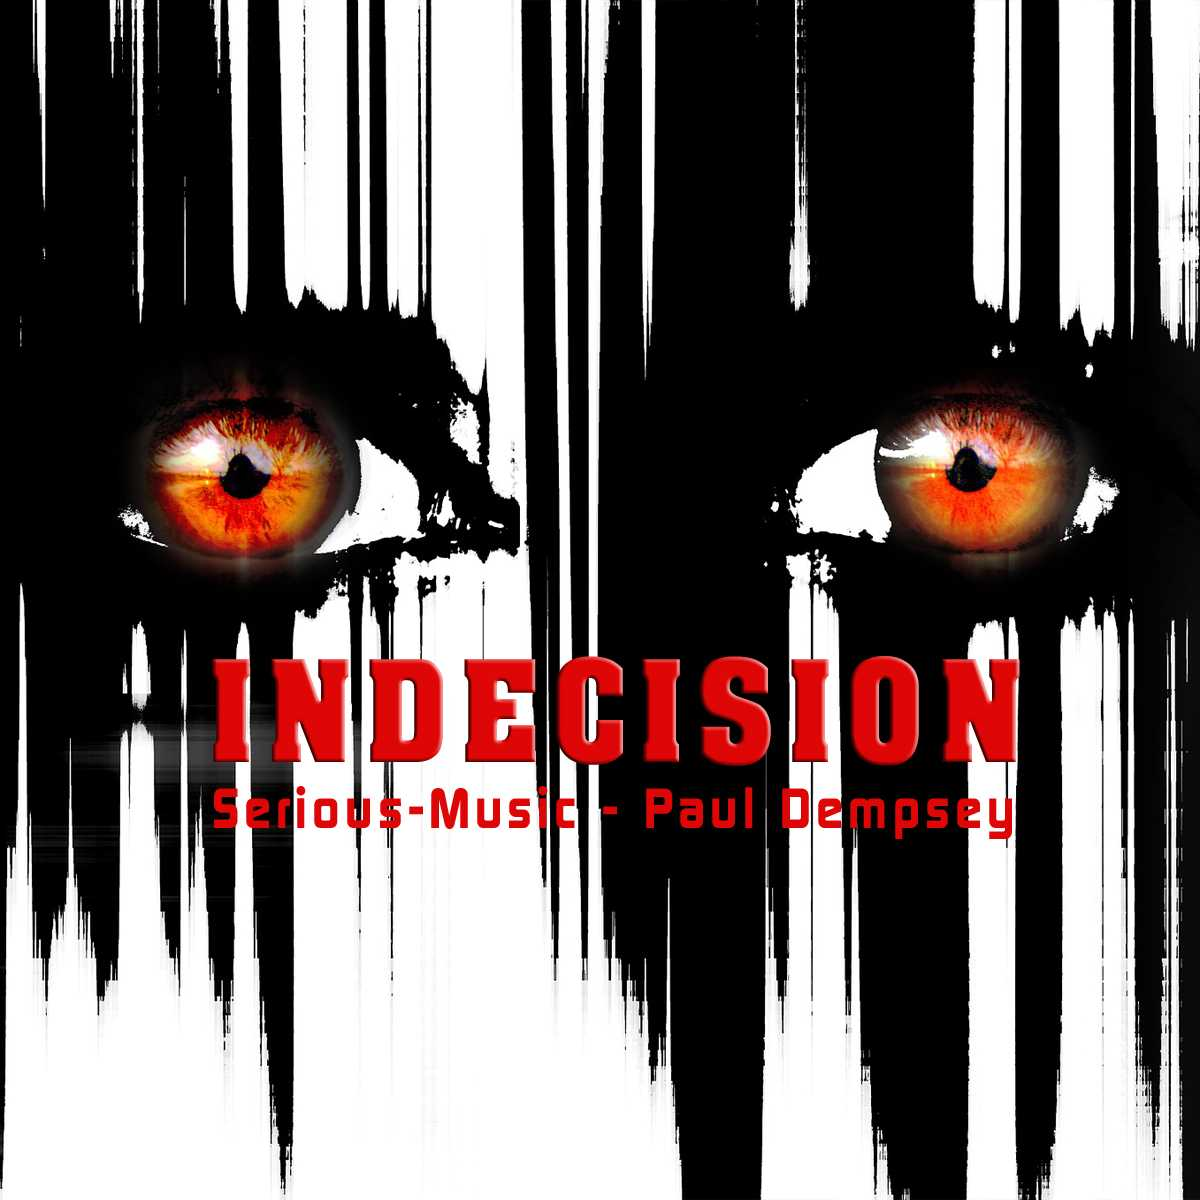 Indecision feat. Paul Dempsey - SINGLE